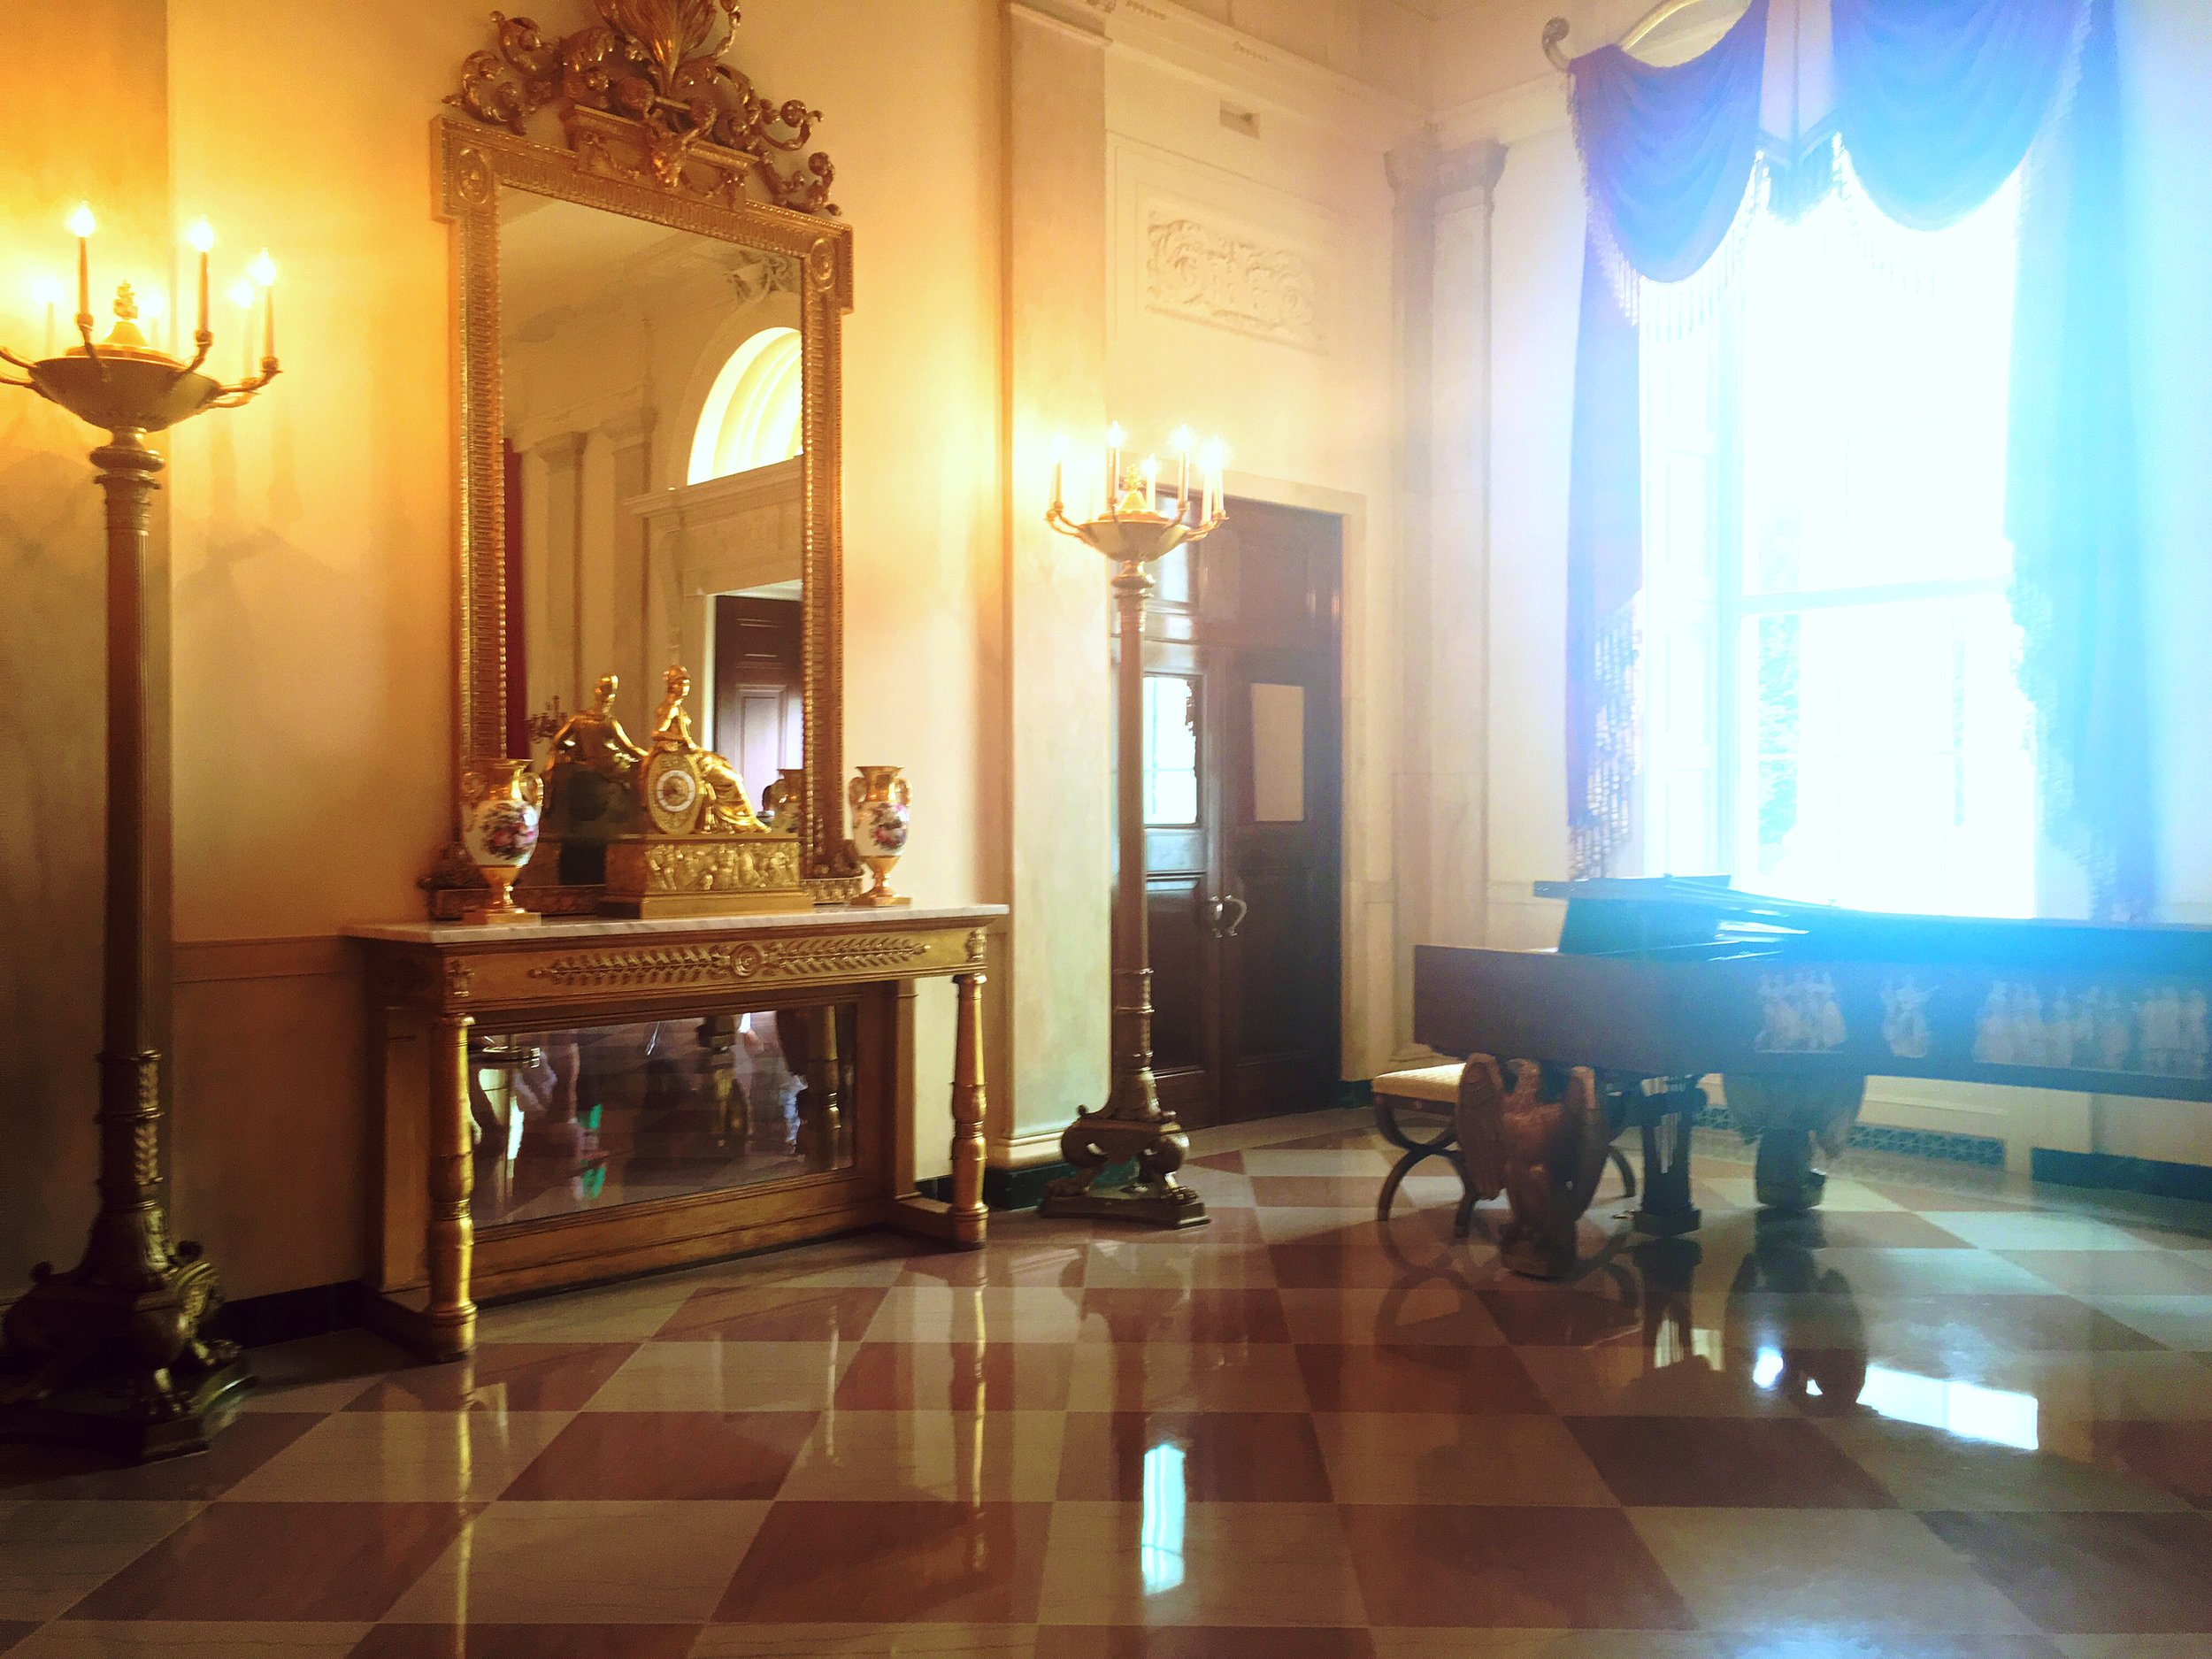 A dramatic tableau in the Entrance Hall of the White House.